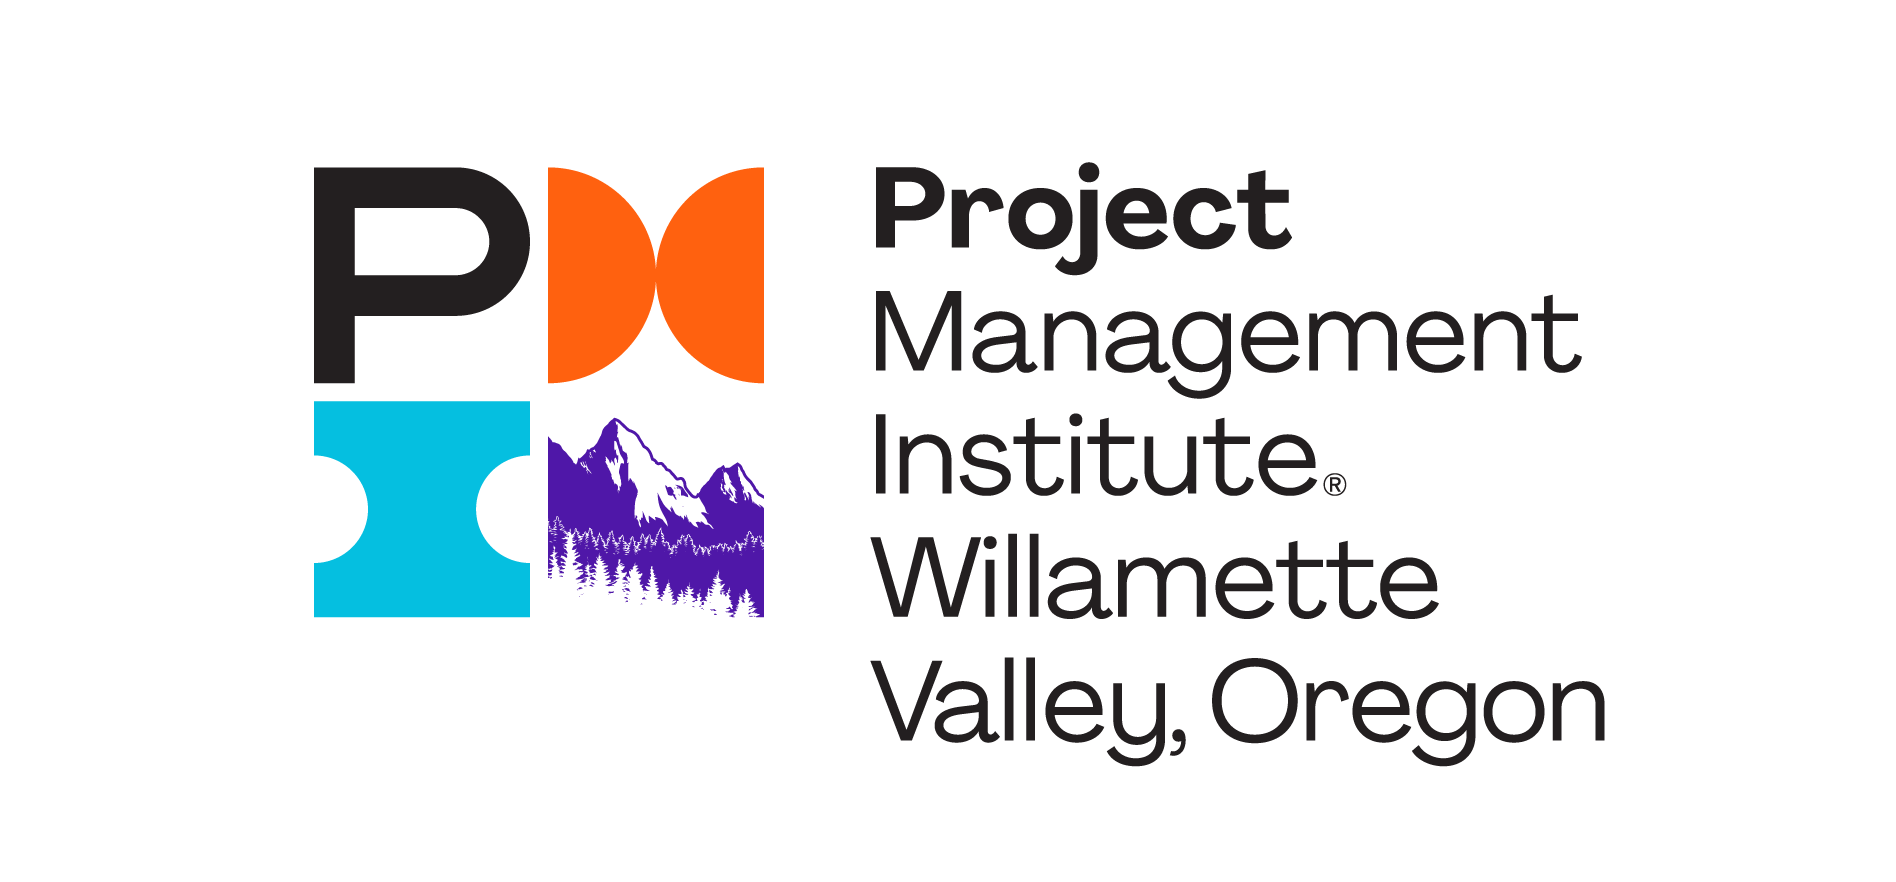 pmi chp logo willamette valley hrz clr rgb